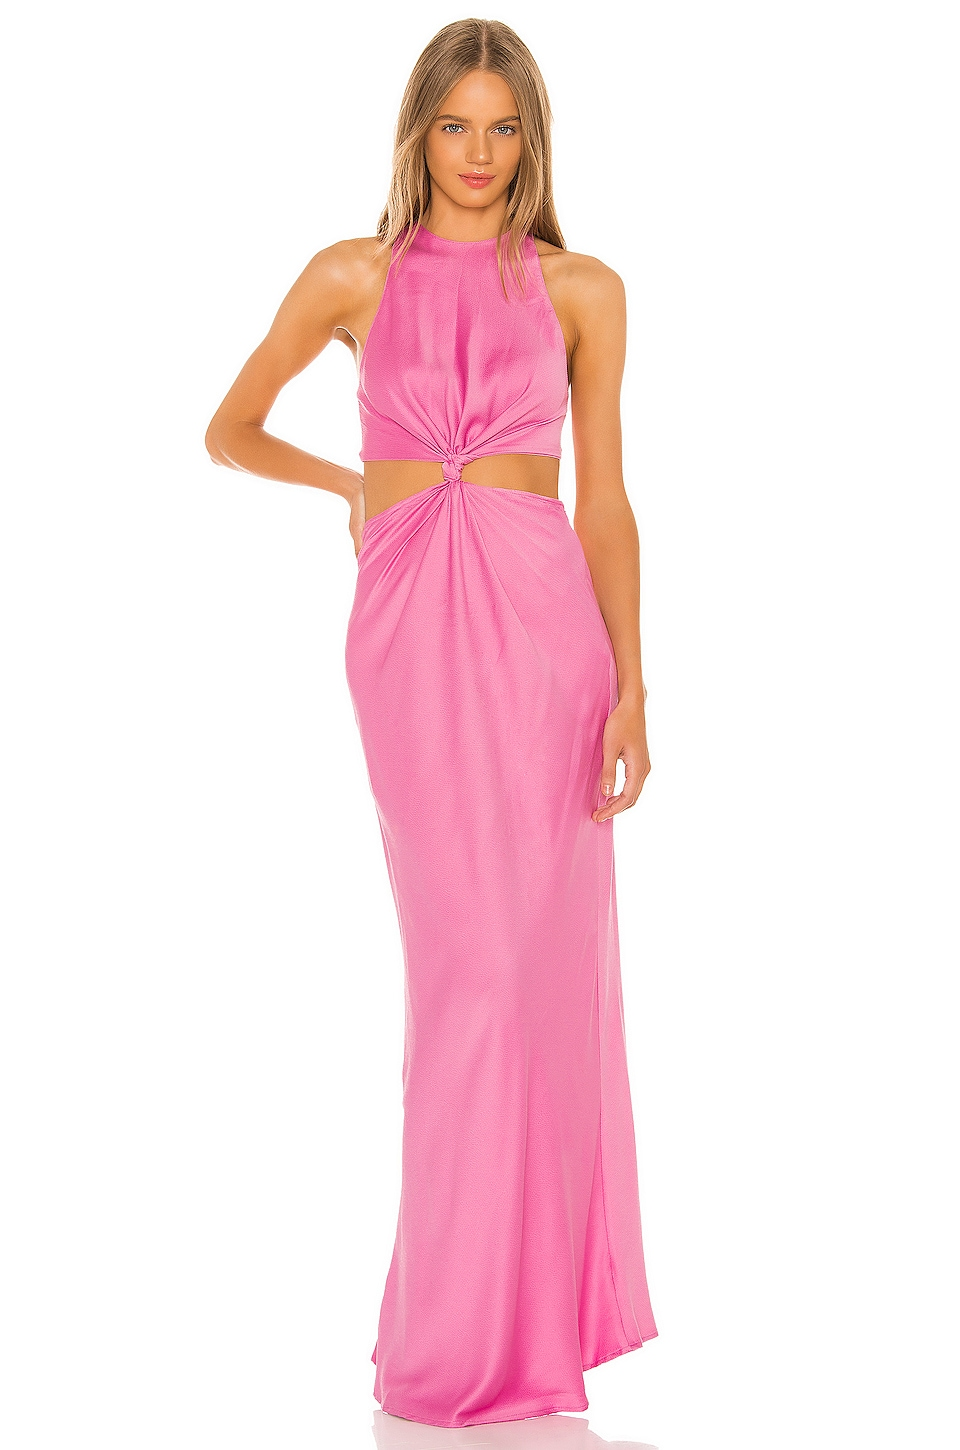 L'Academie The Sinclair Maxi Dress in Orchid